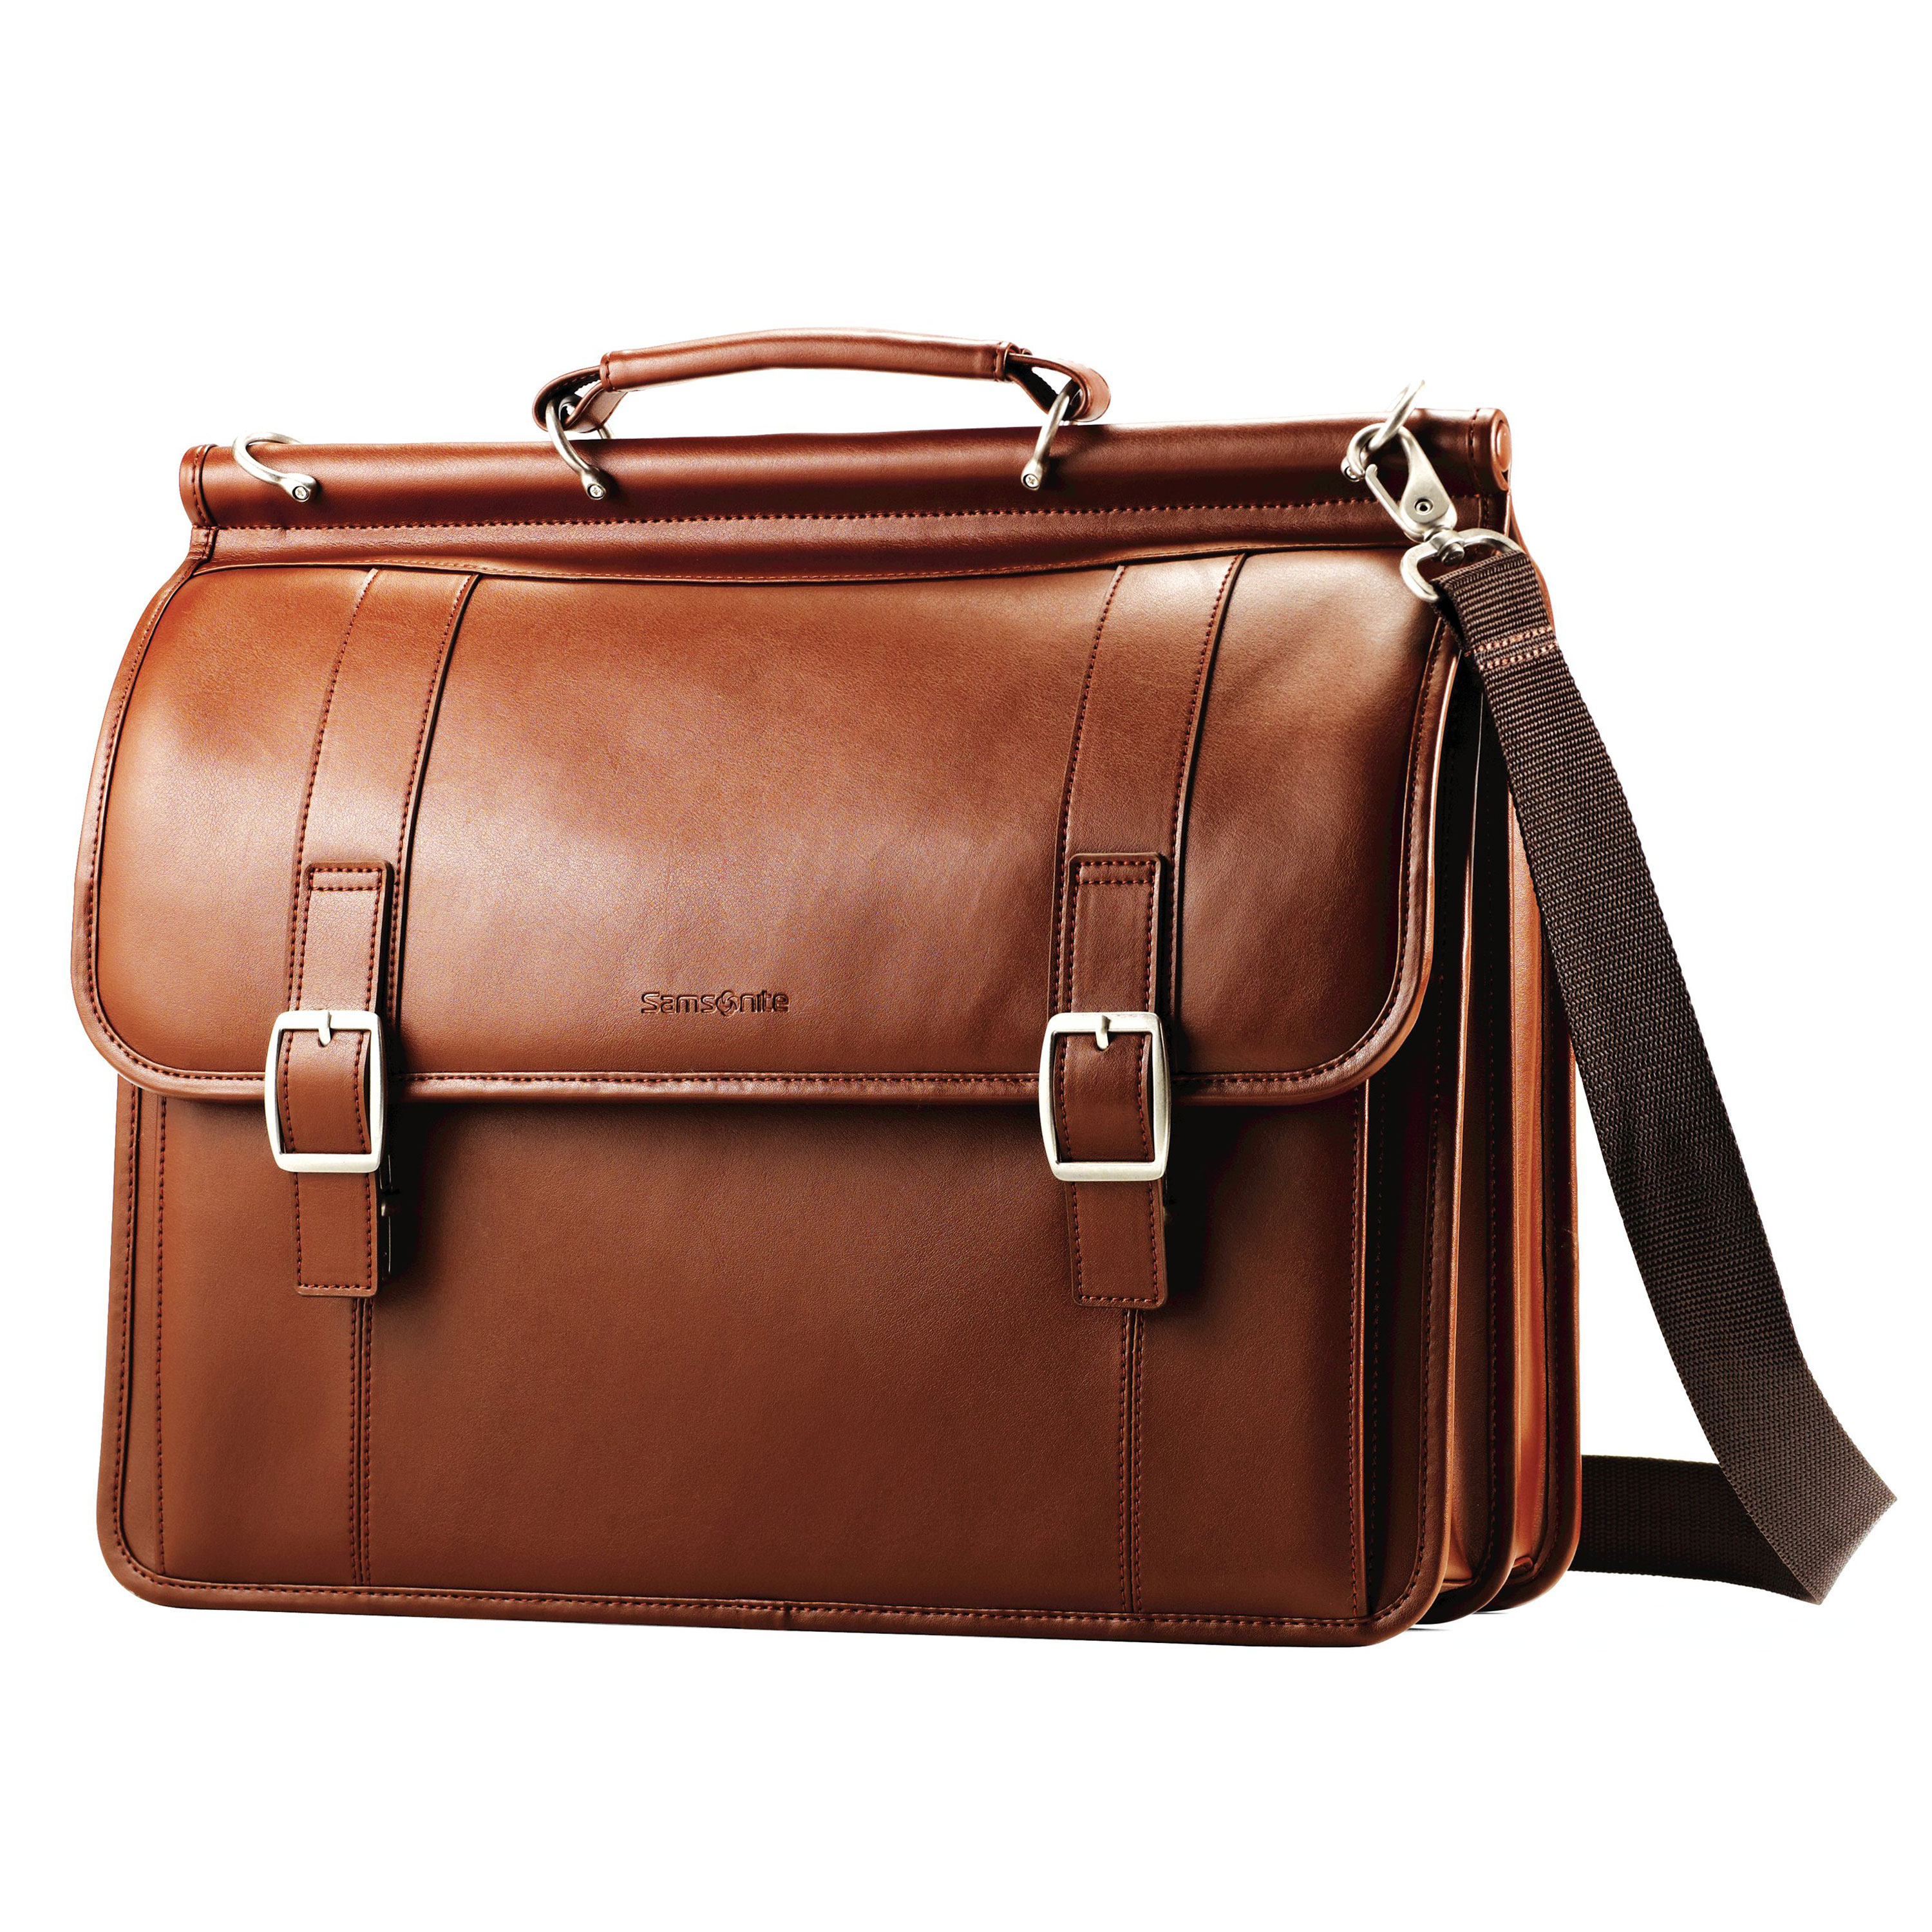 A timeless classic that is crafted from genuine leathers. Its a clean professional look that keeps it simple. & #149 Main compartment features a padded laptop compartment. Crafted of genuine leather. Front pocket organization for all of your business needs. Separate pocket for files and business.